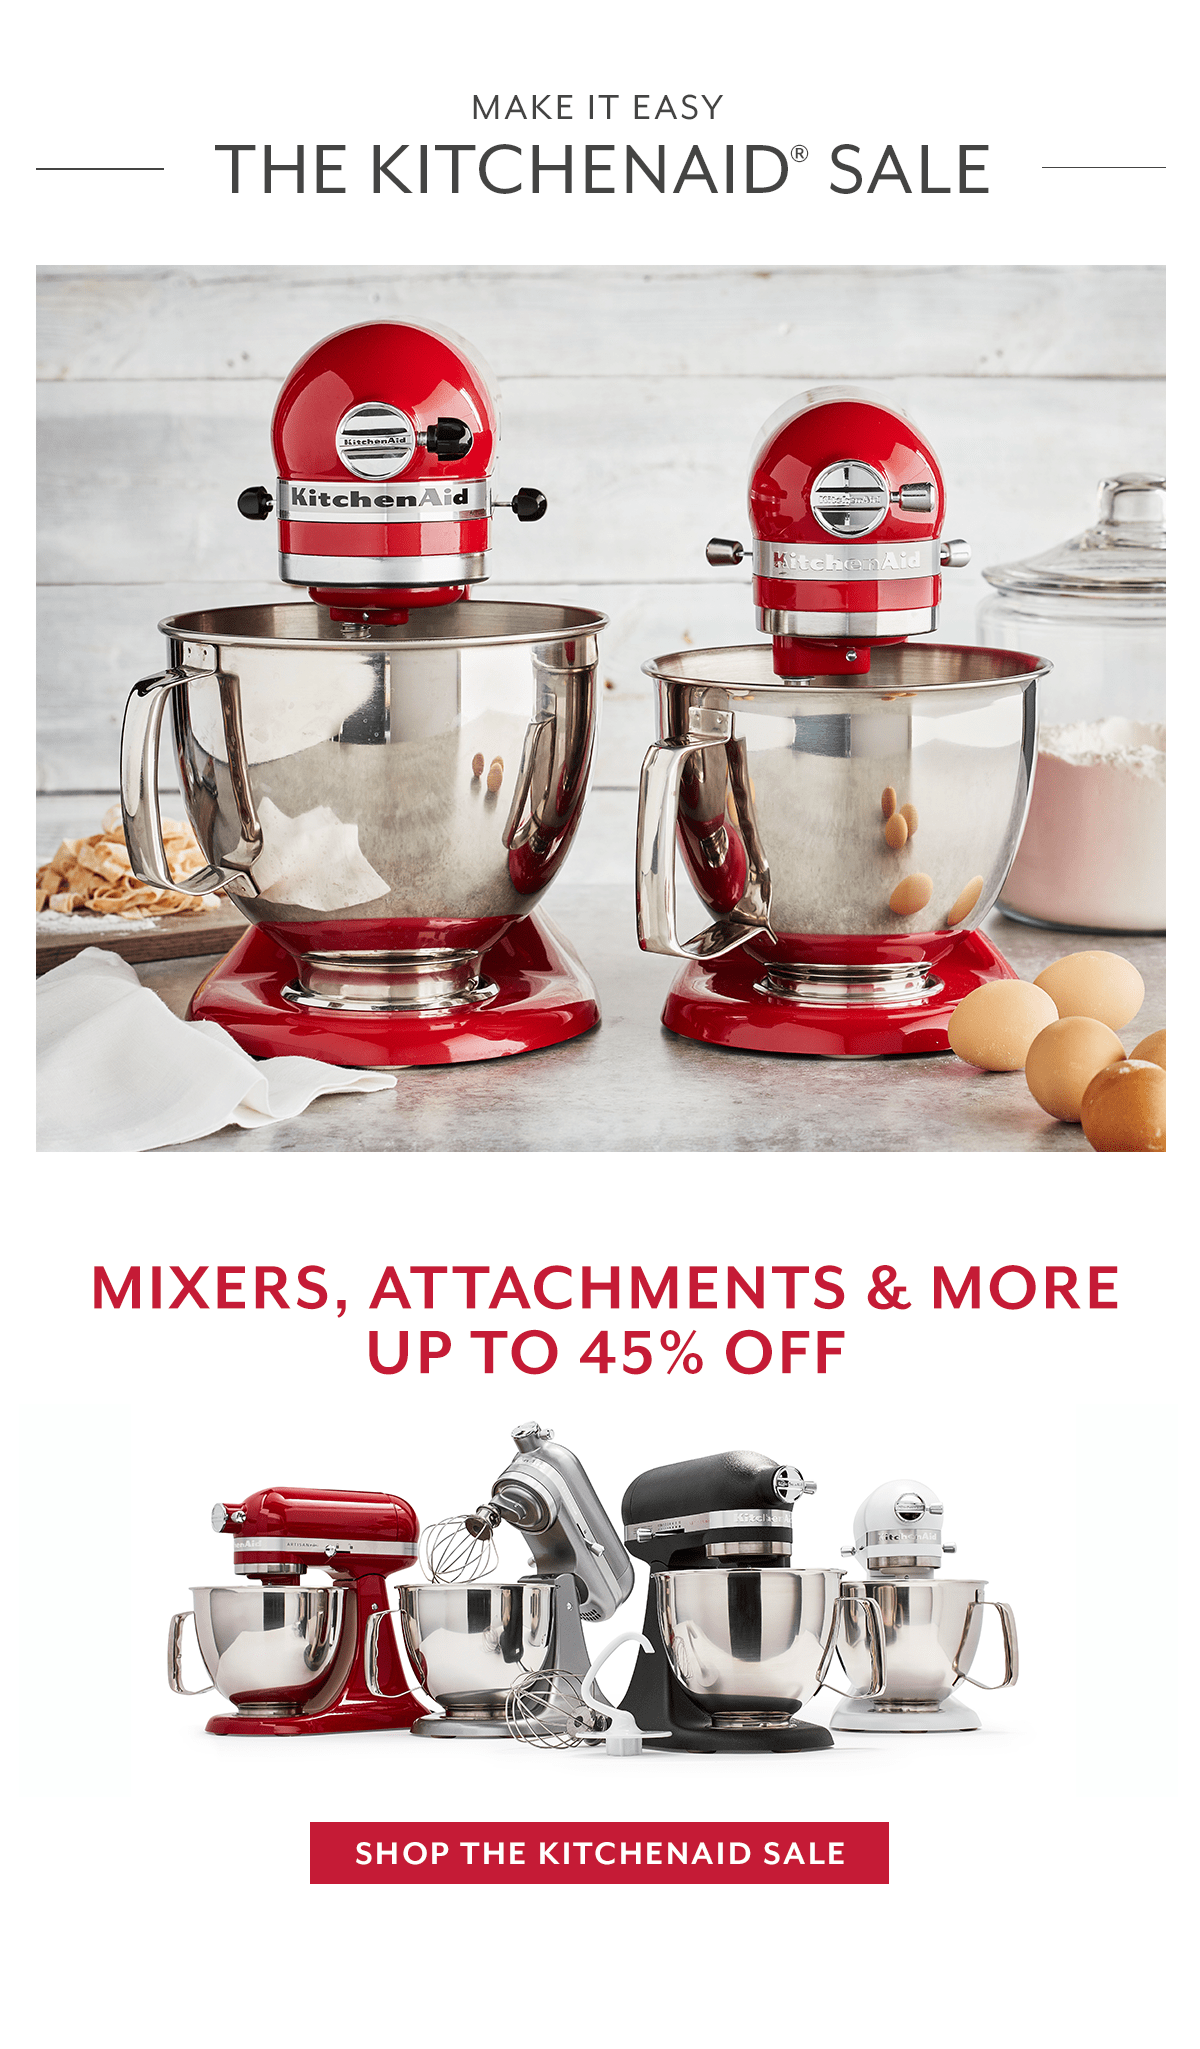 The KitchenAid Sale